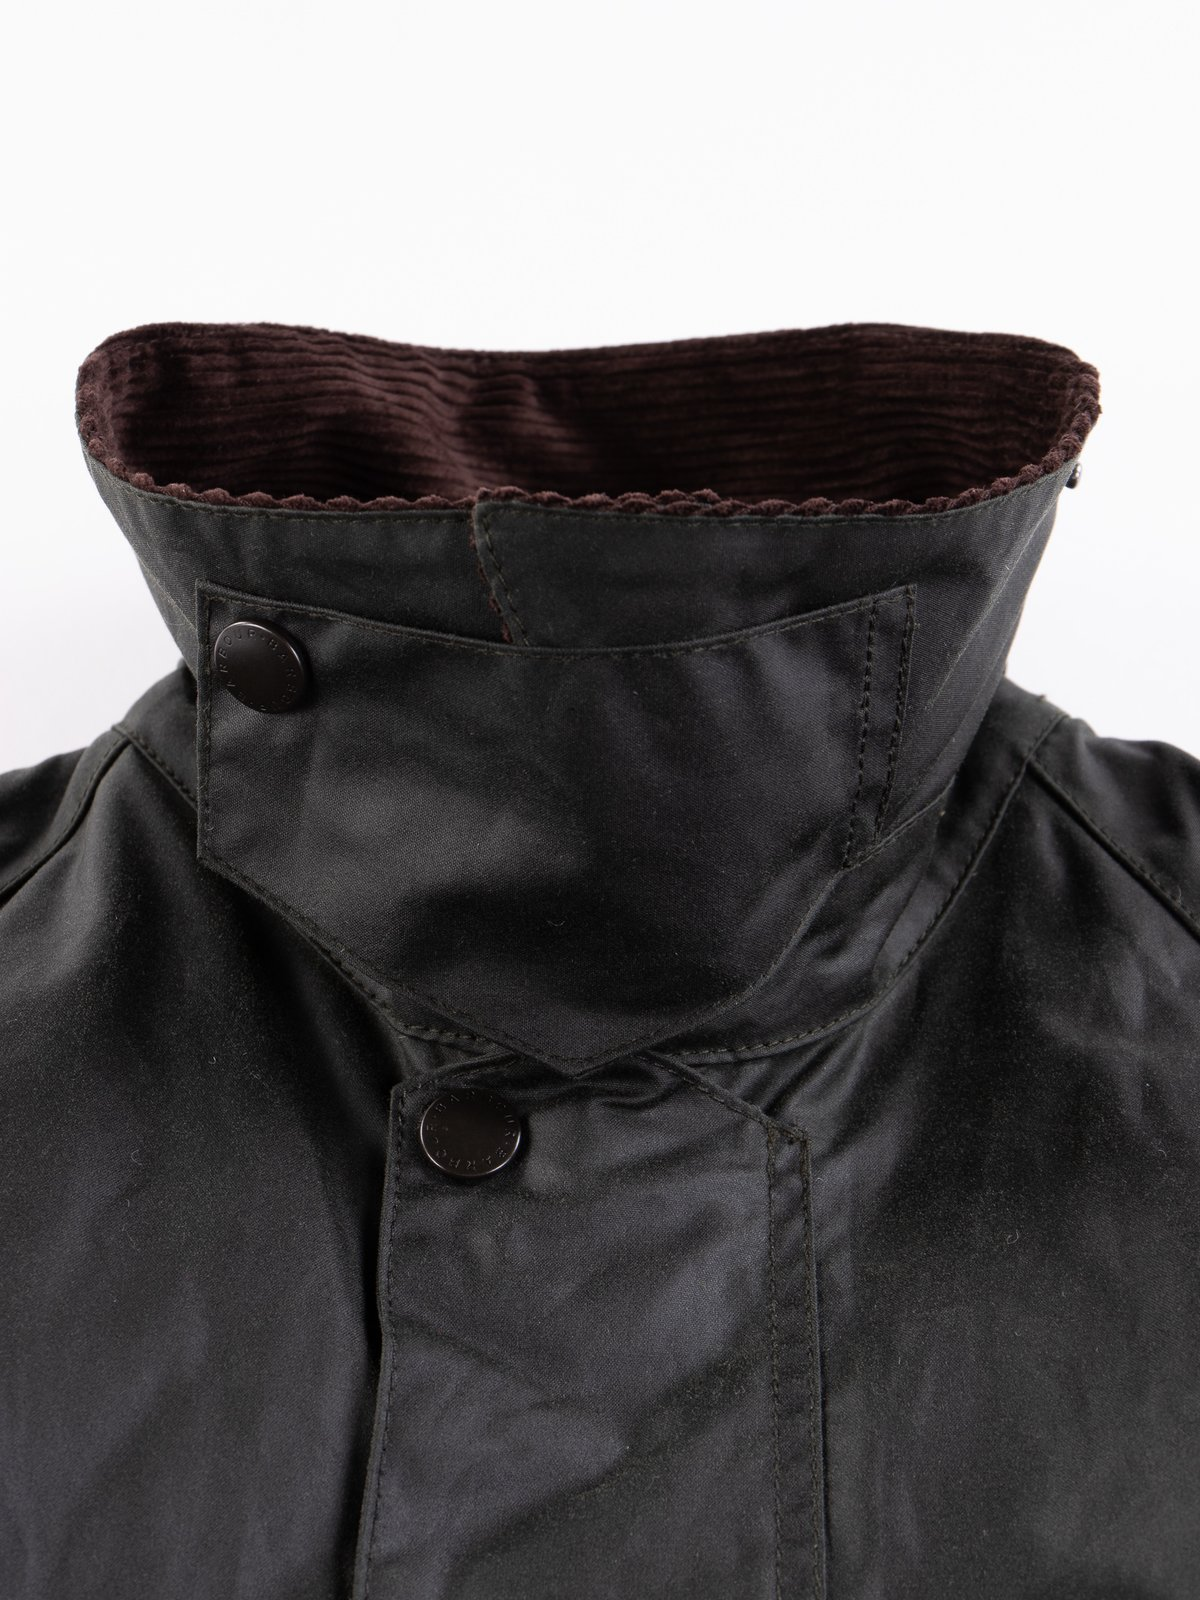 Sage Oversized Beaufort Waxed Cotton Jacket - Image 7